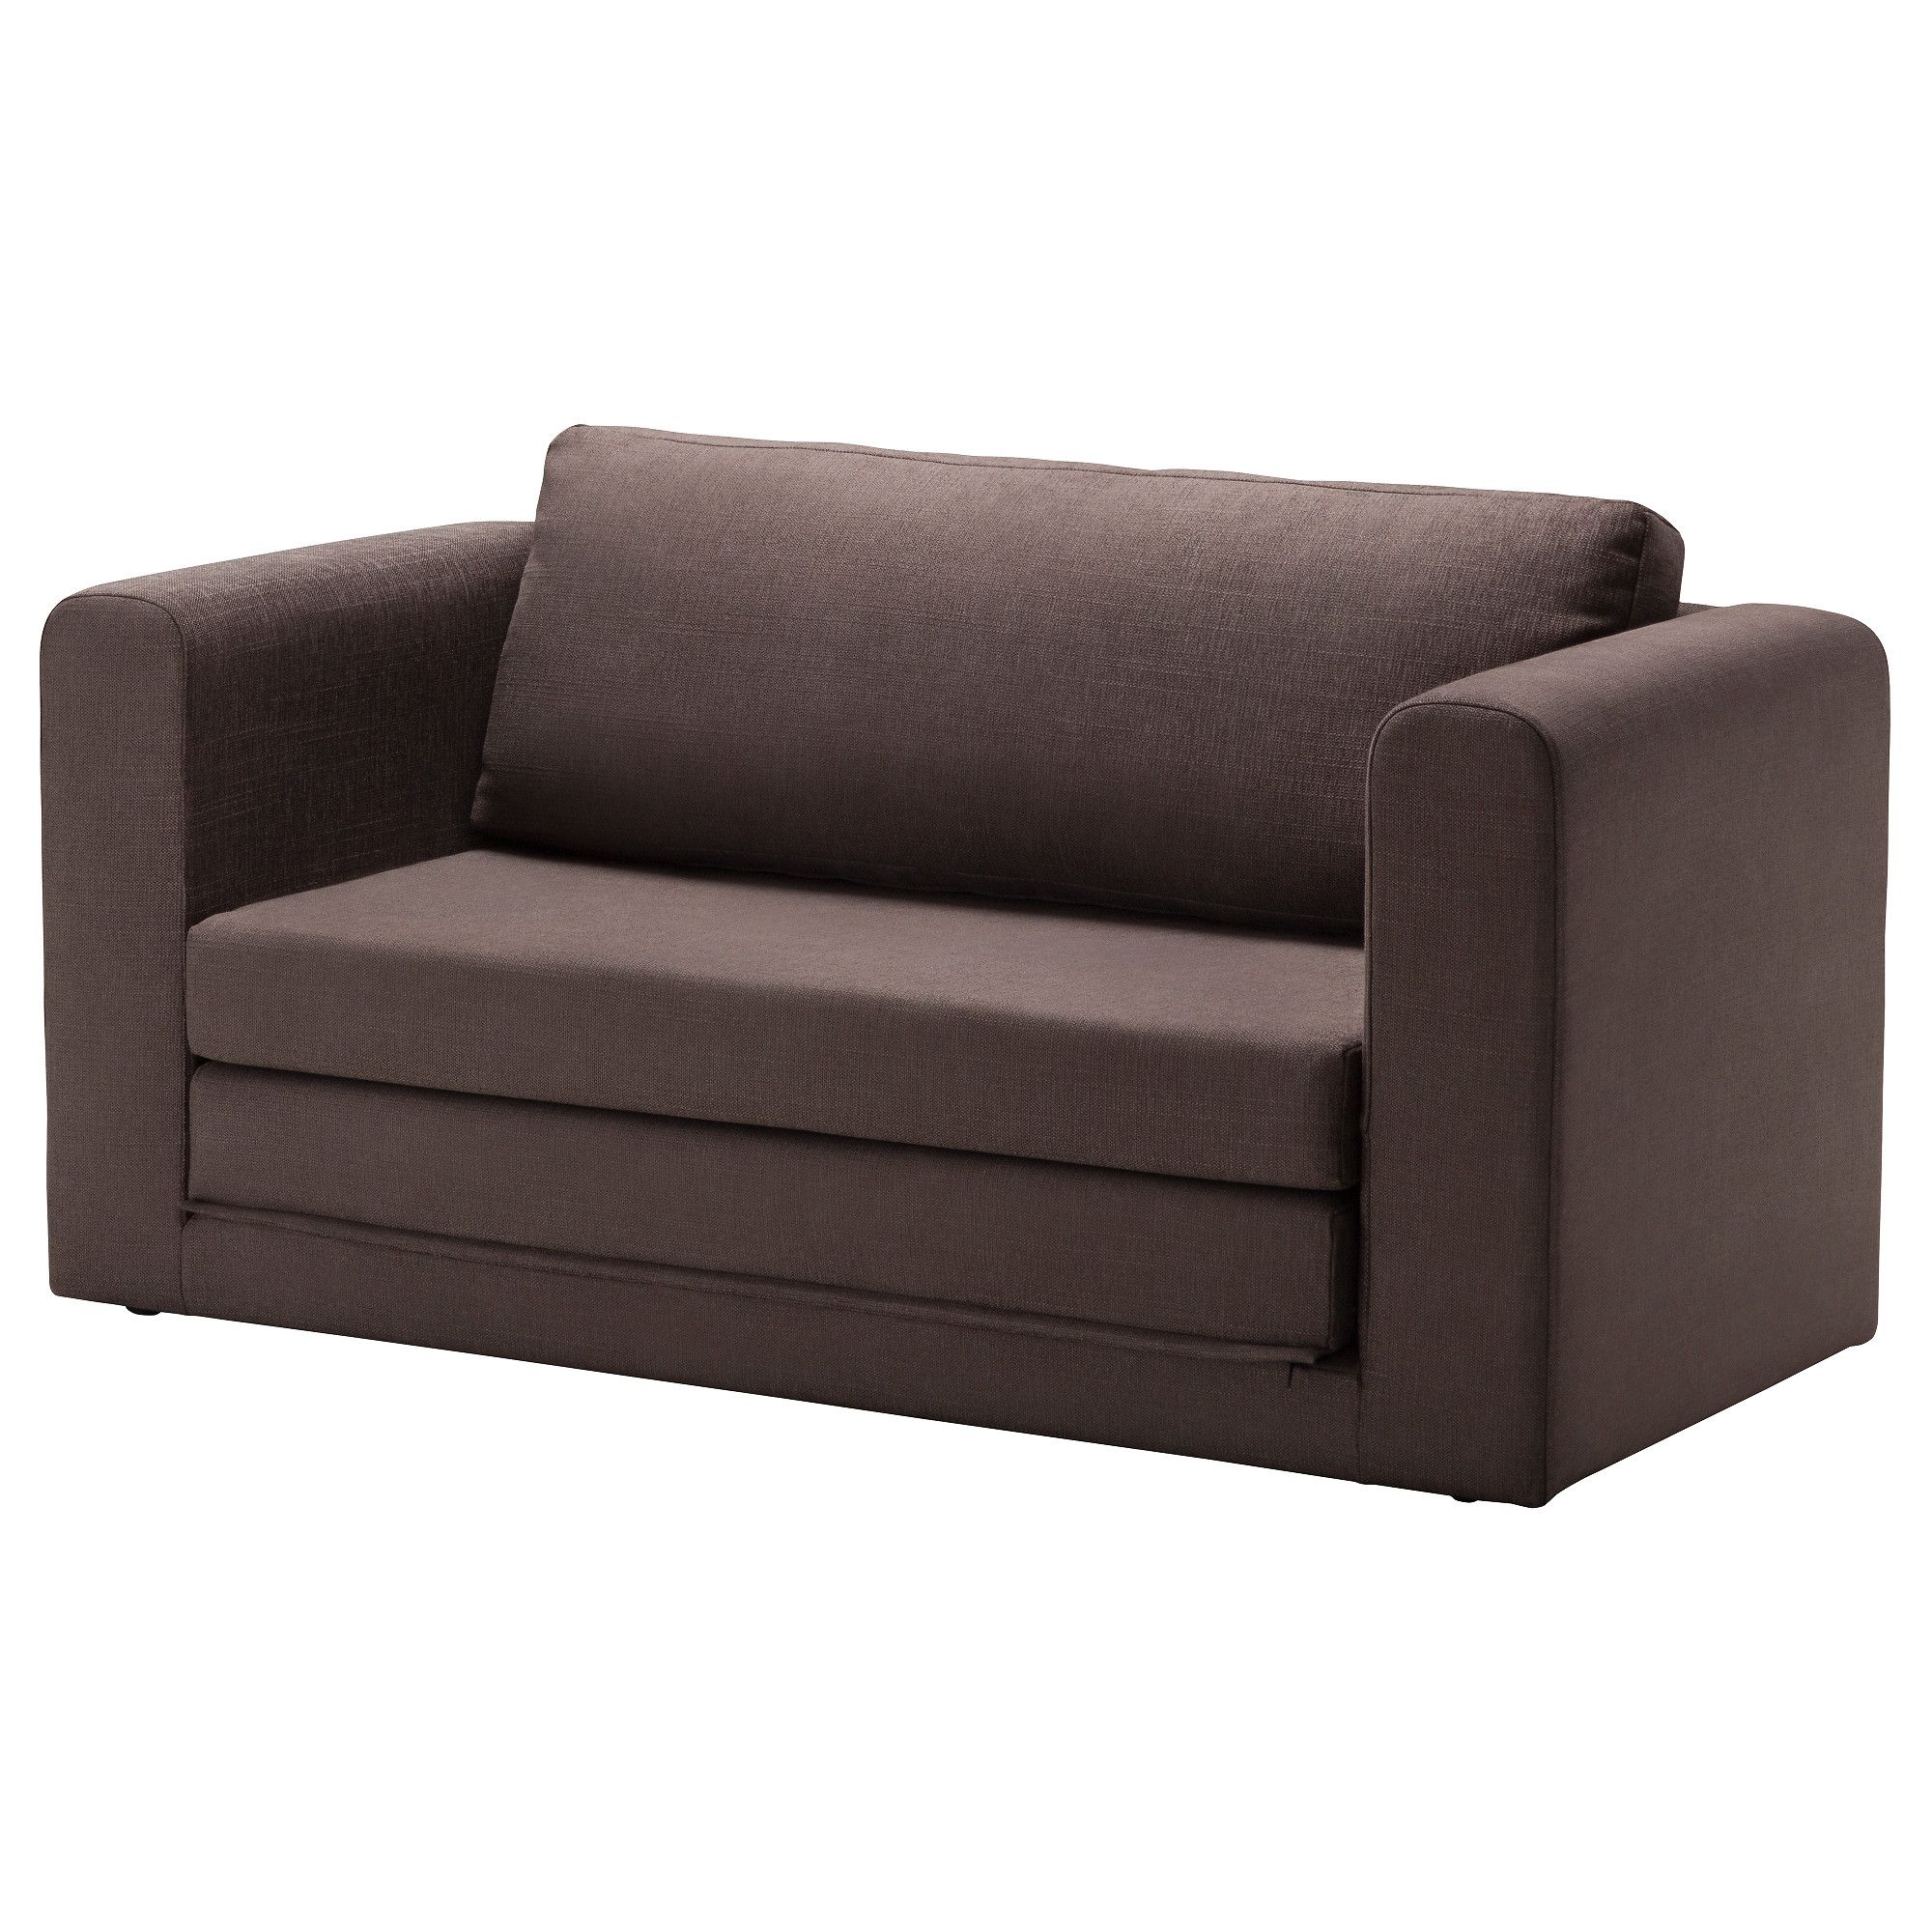 ASKEBY Two seat sofa bed Tullinge grey brown